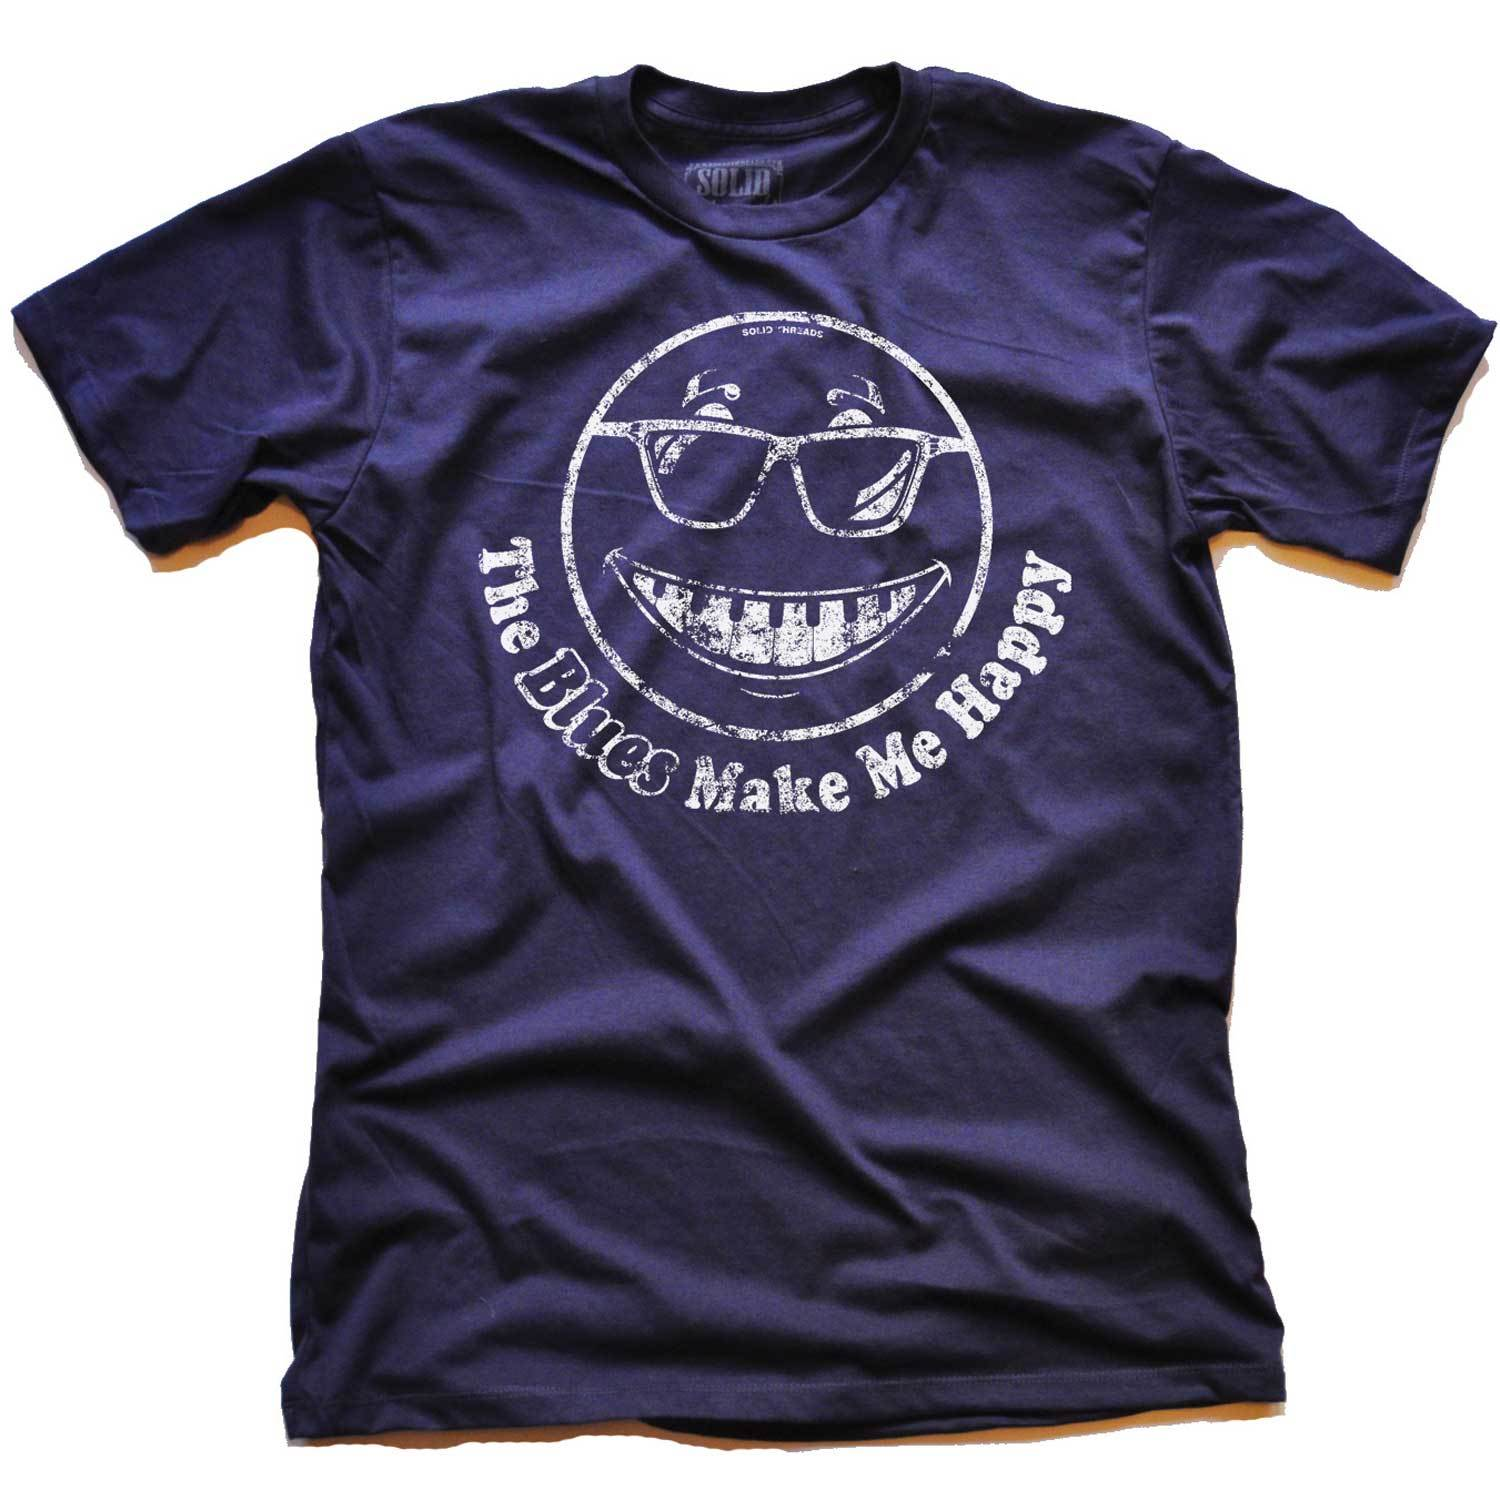 Men's The Blues Make Me Happy Vintage Inspired tee-shirt with cool, music graphic | Solid Threads